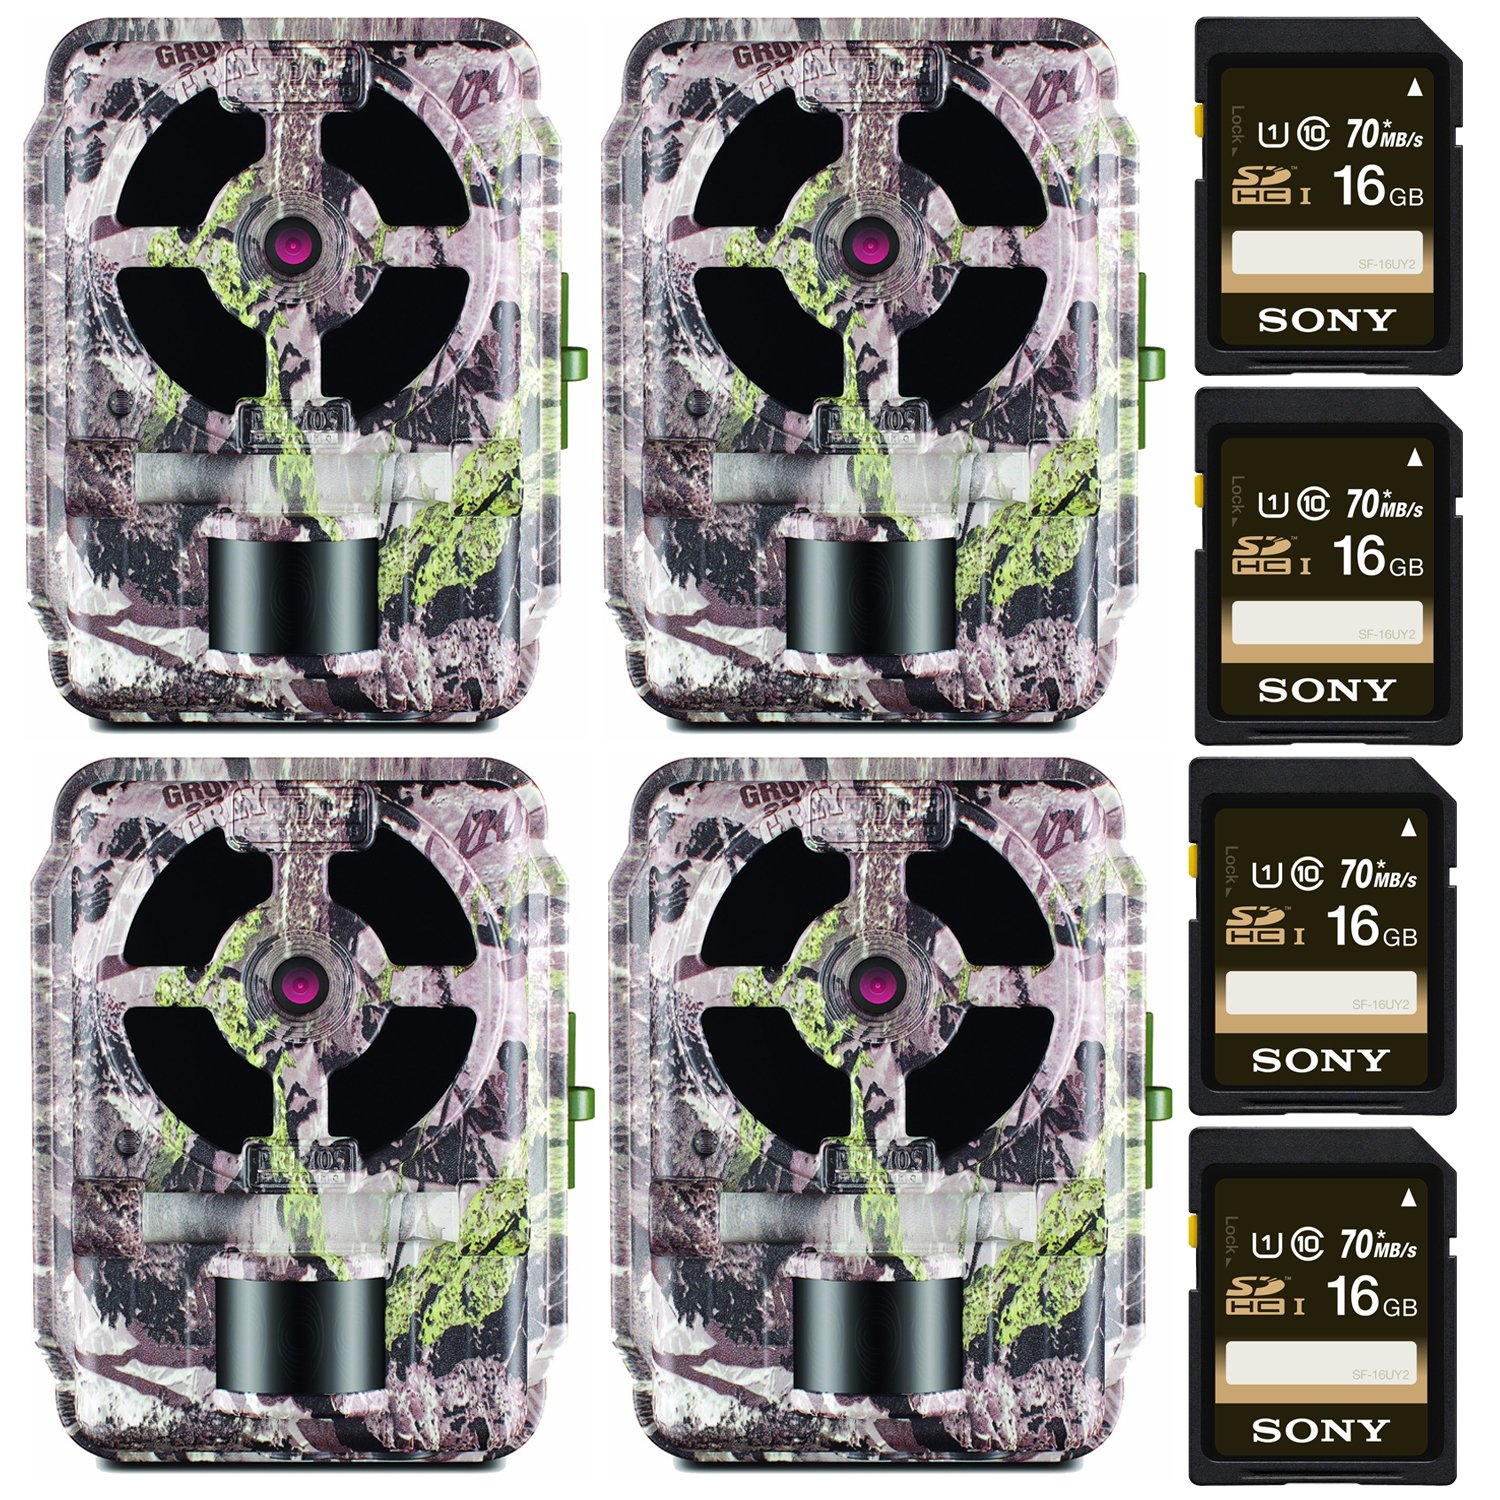 Primos 12MP Proof 46 Matrix Trail Camera (Low Glow) - Set of 4 with Memory Cards